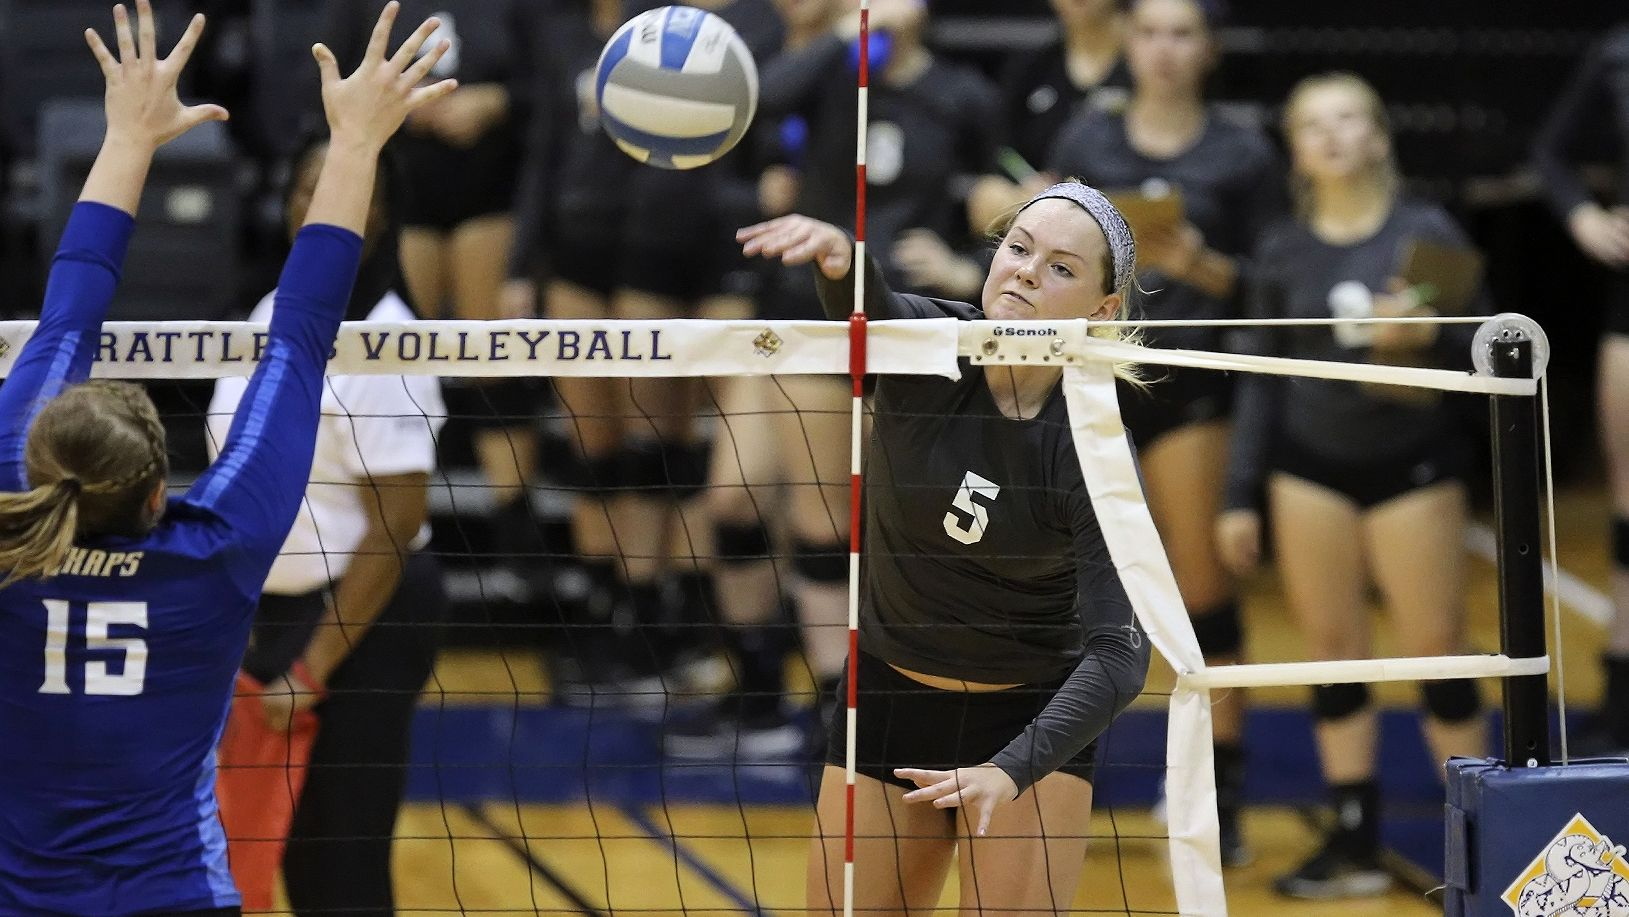 Stmu Volleyball S Channing Hankins Nets All Tournament Team Honors Tournaments Athlete Volleyballs